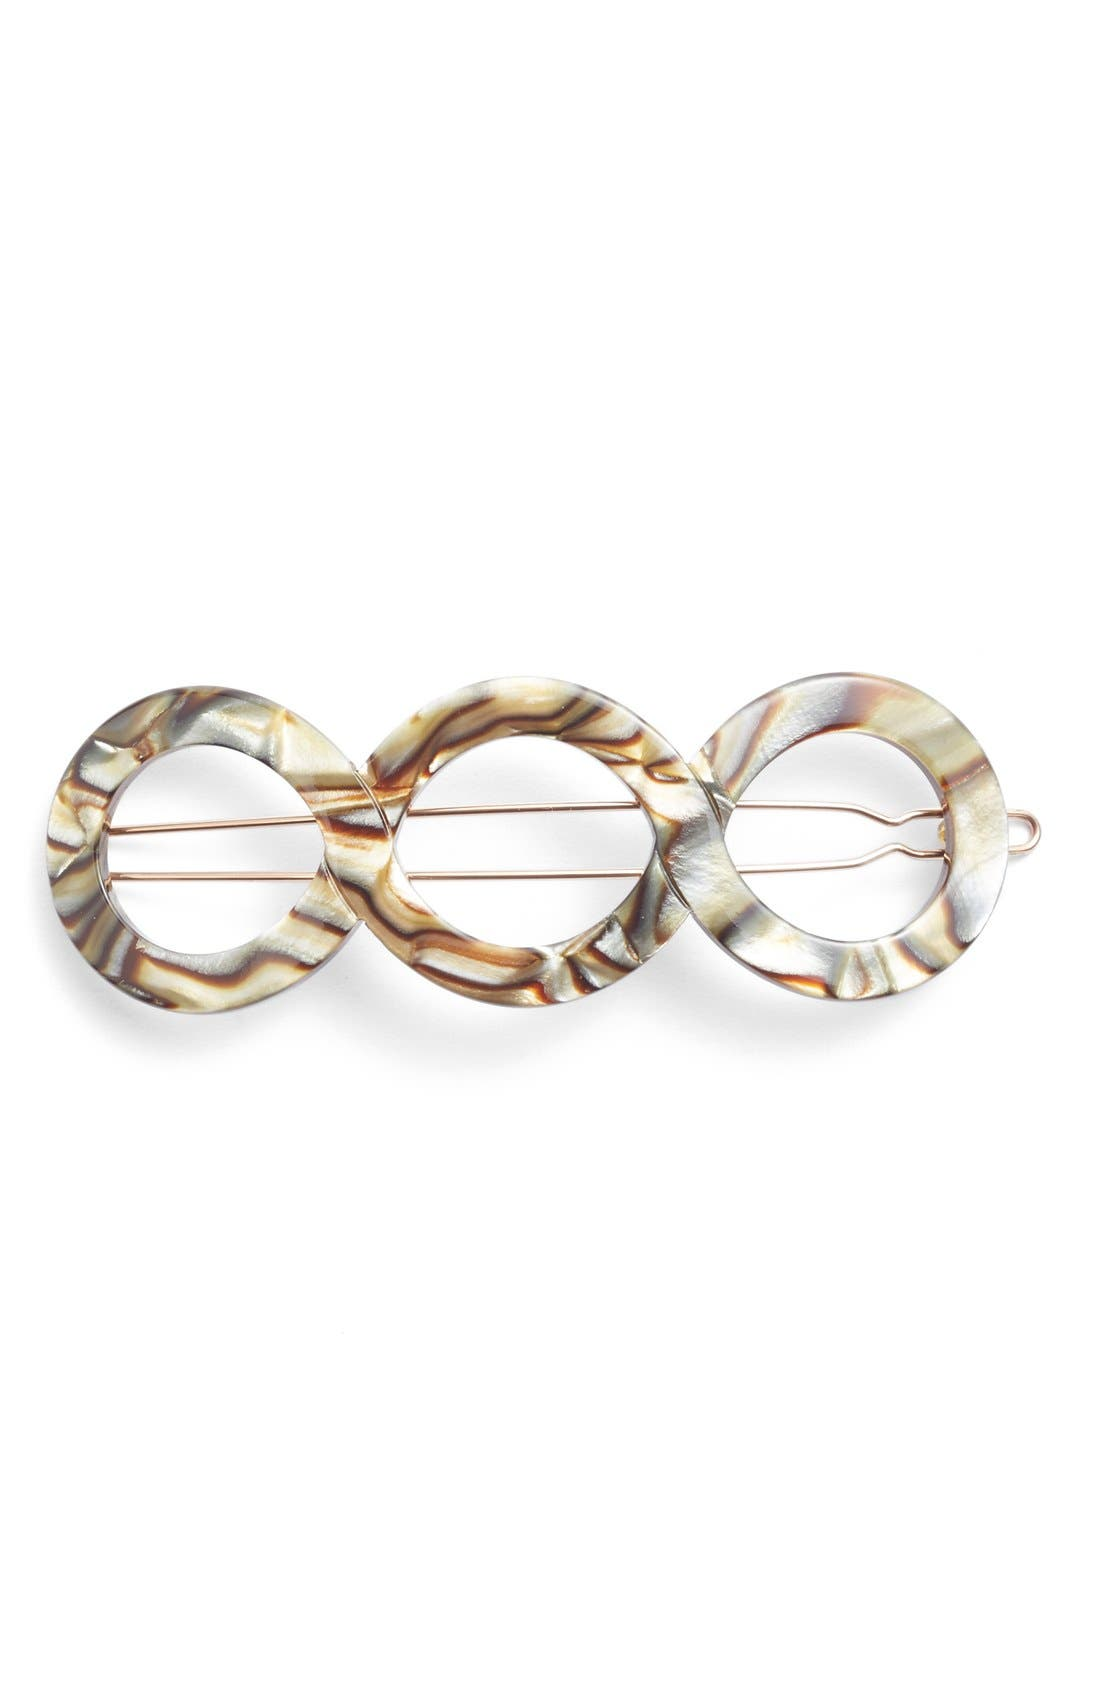 Triple Circle Tige Boule Barrette,                         Main,                         color, Onyx